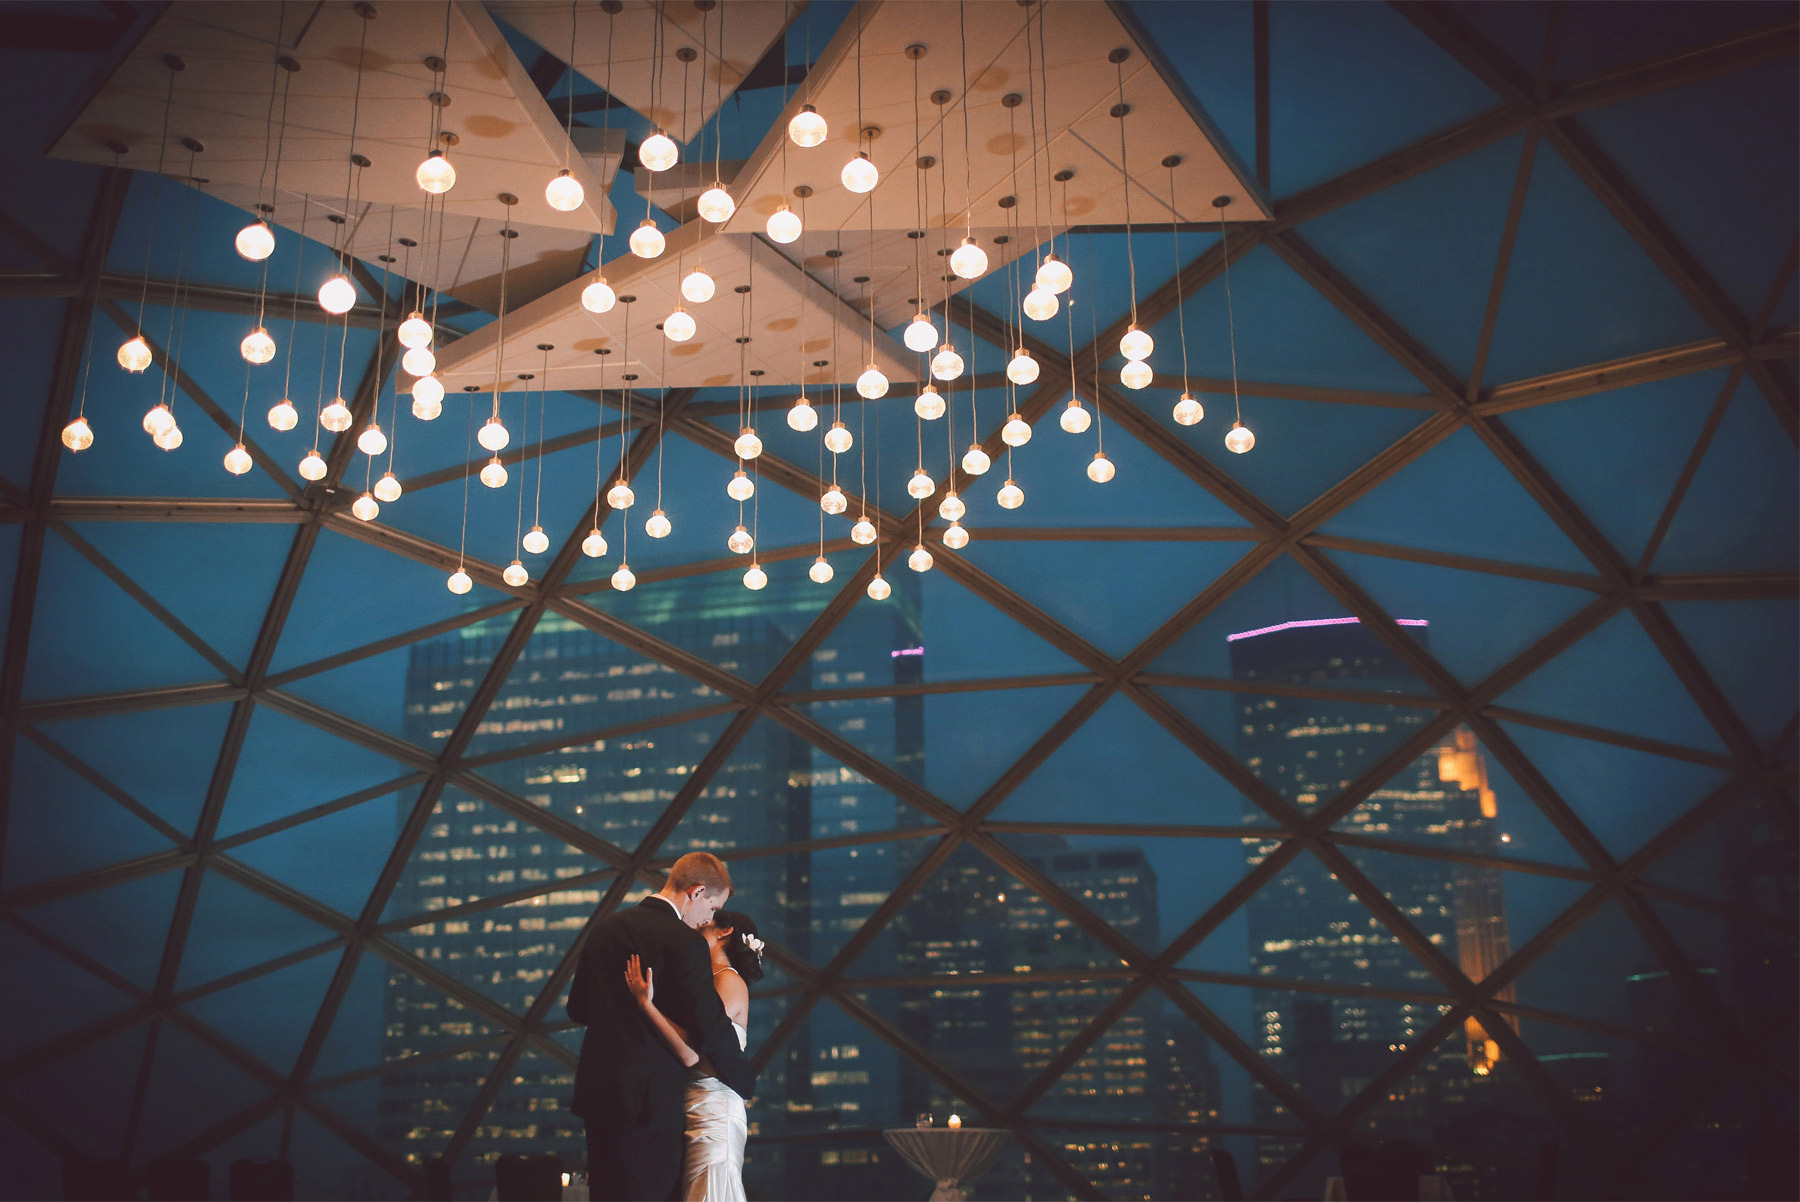 24-Minneapolis-Minnesota-Wedding-Photographer-by-Andrew-Vick-Photography-Fall-Autumn-Millennium-Hotel-Reception-Bride-Groom-Dance-Night-Skyline-Vintage-Amanda-and-Cary.jpg